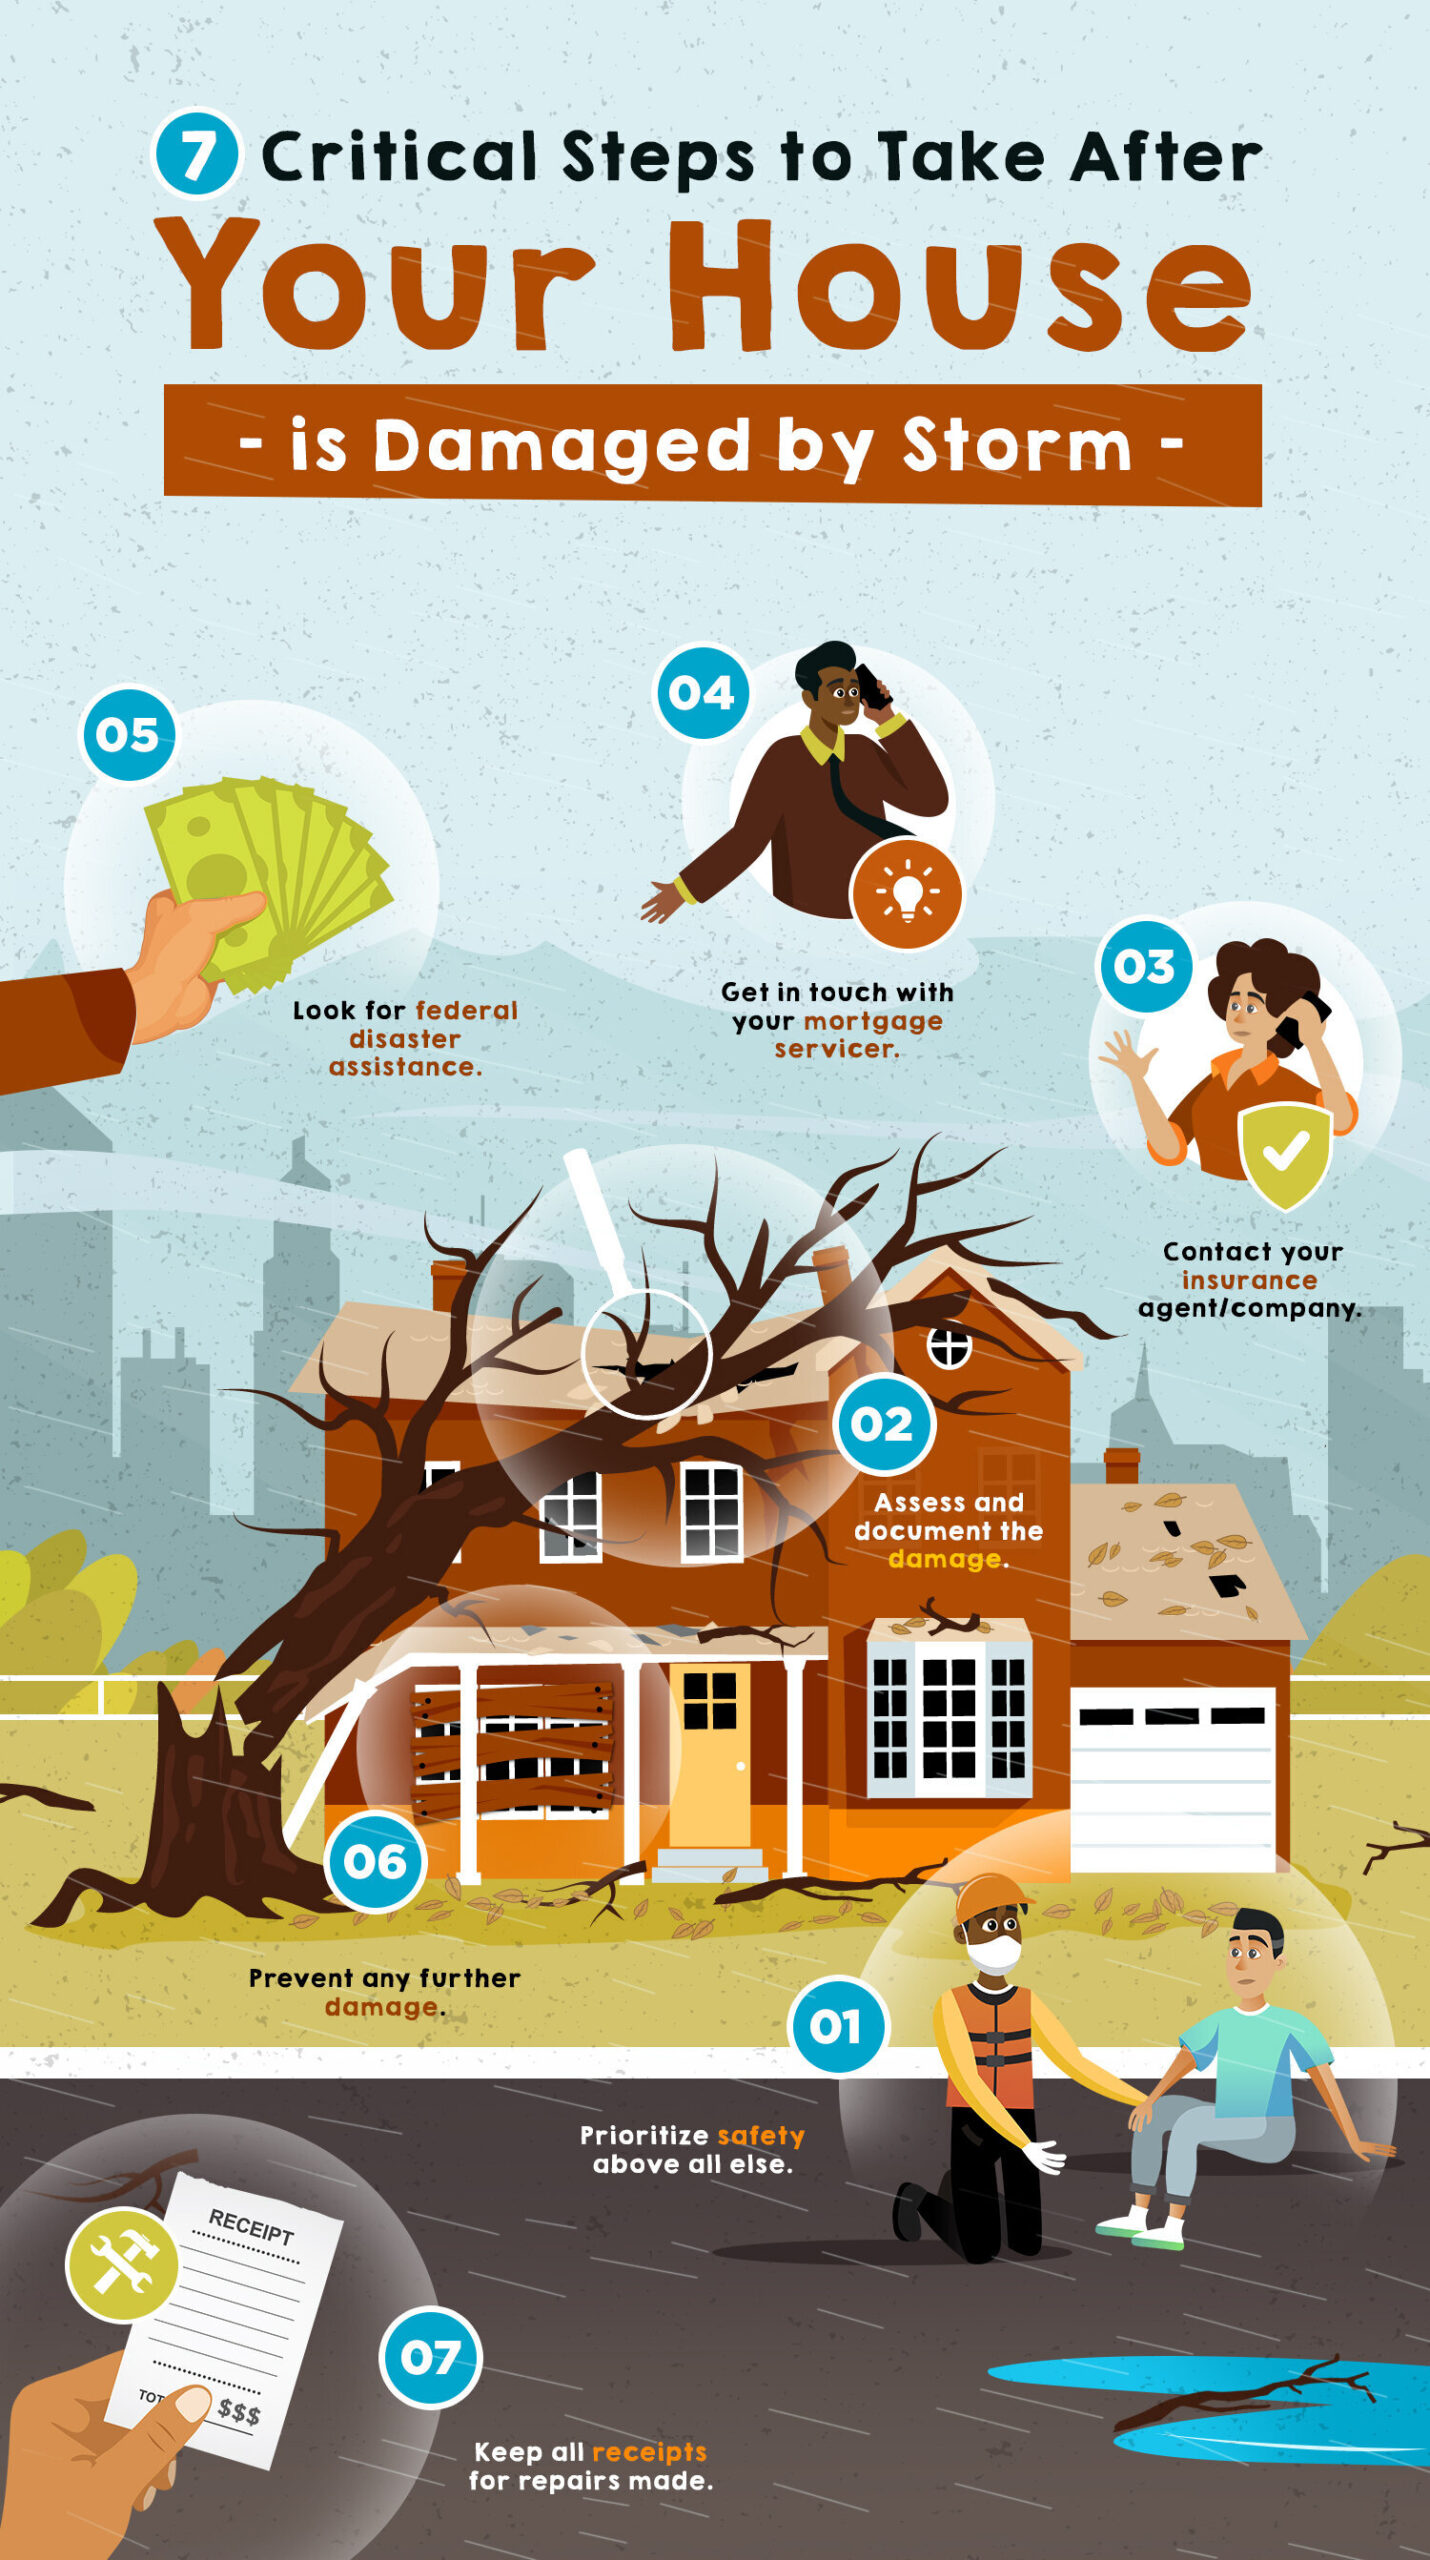 7 Critical Steps to Take After Your House Is Damaged by Storm